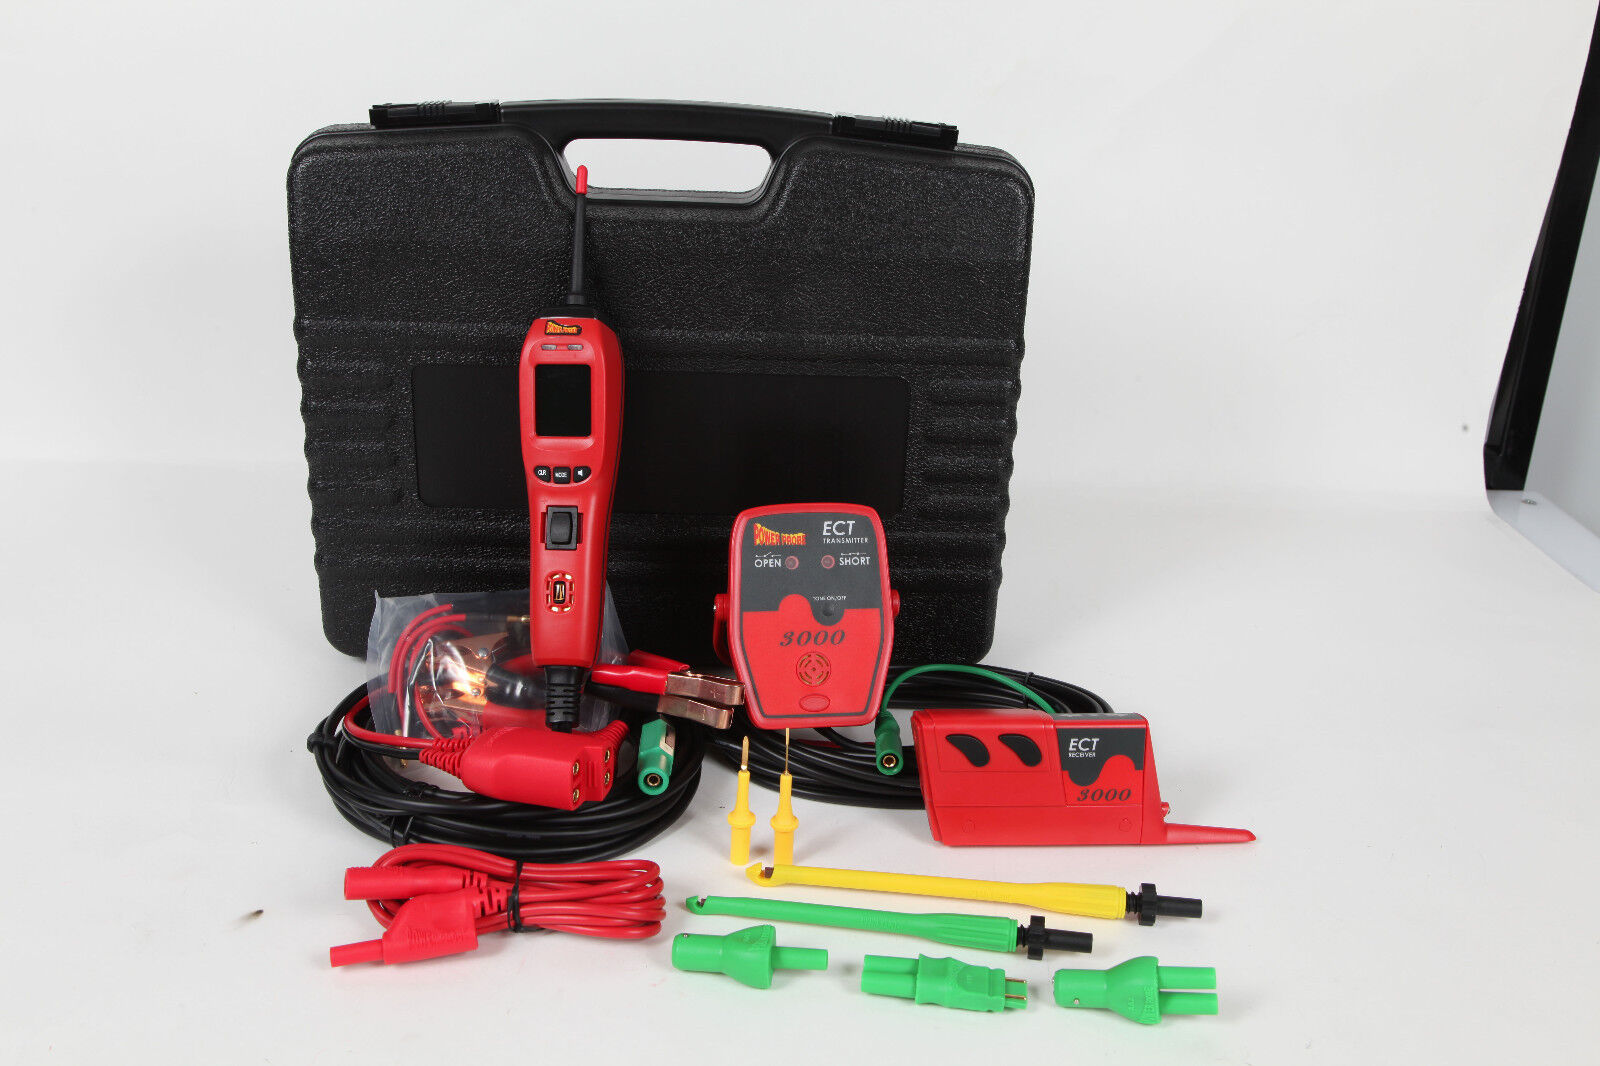 Power Probe 4 Master Kit With Intell Tracer Ppkit04 878253003143 Ebay Audio Signal Injector Intelligent Circuit For Shorts And Opens Gold Series Lead Set Ppls01 This Diagnostic Is Well Balanced To